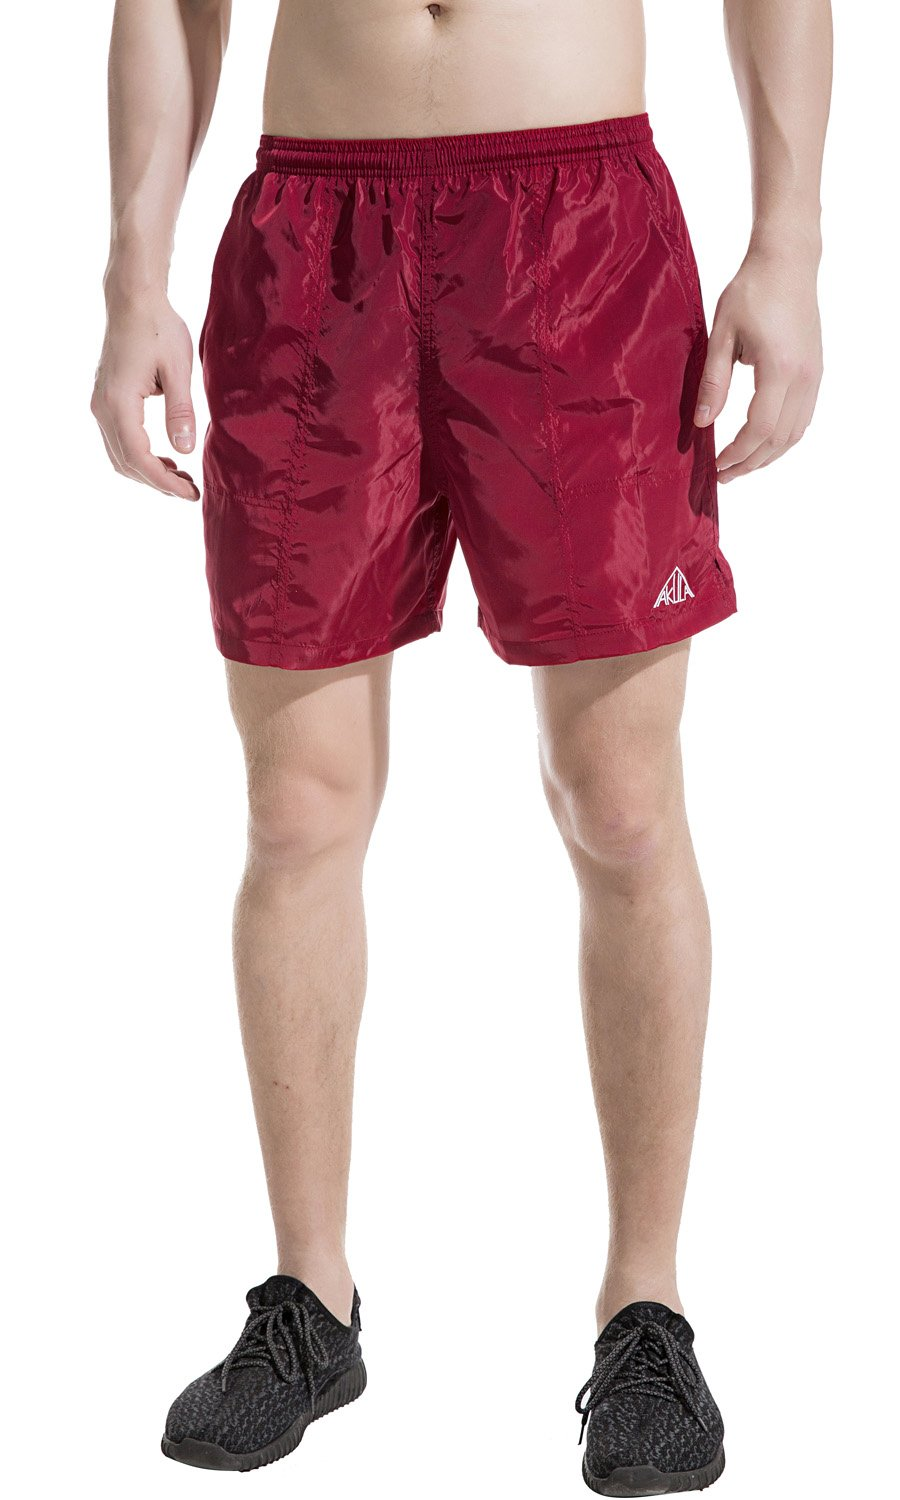 Akula Men's Workout Sport Shorts Swim Trunks